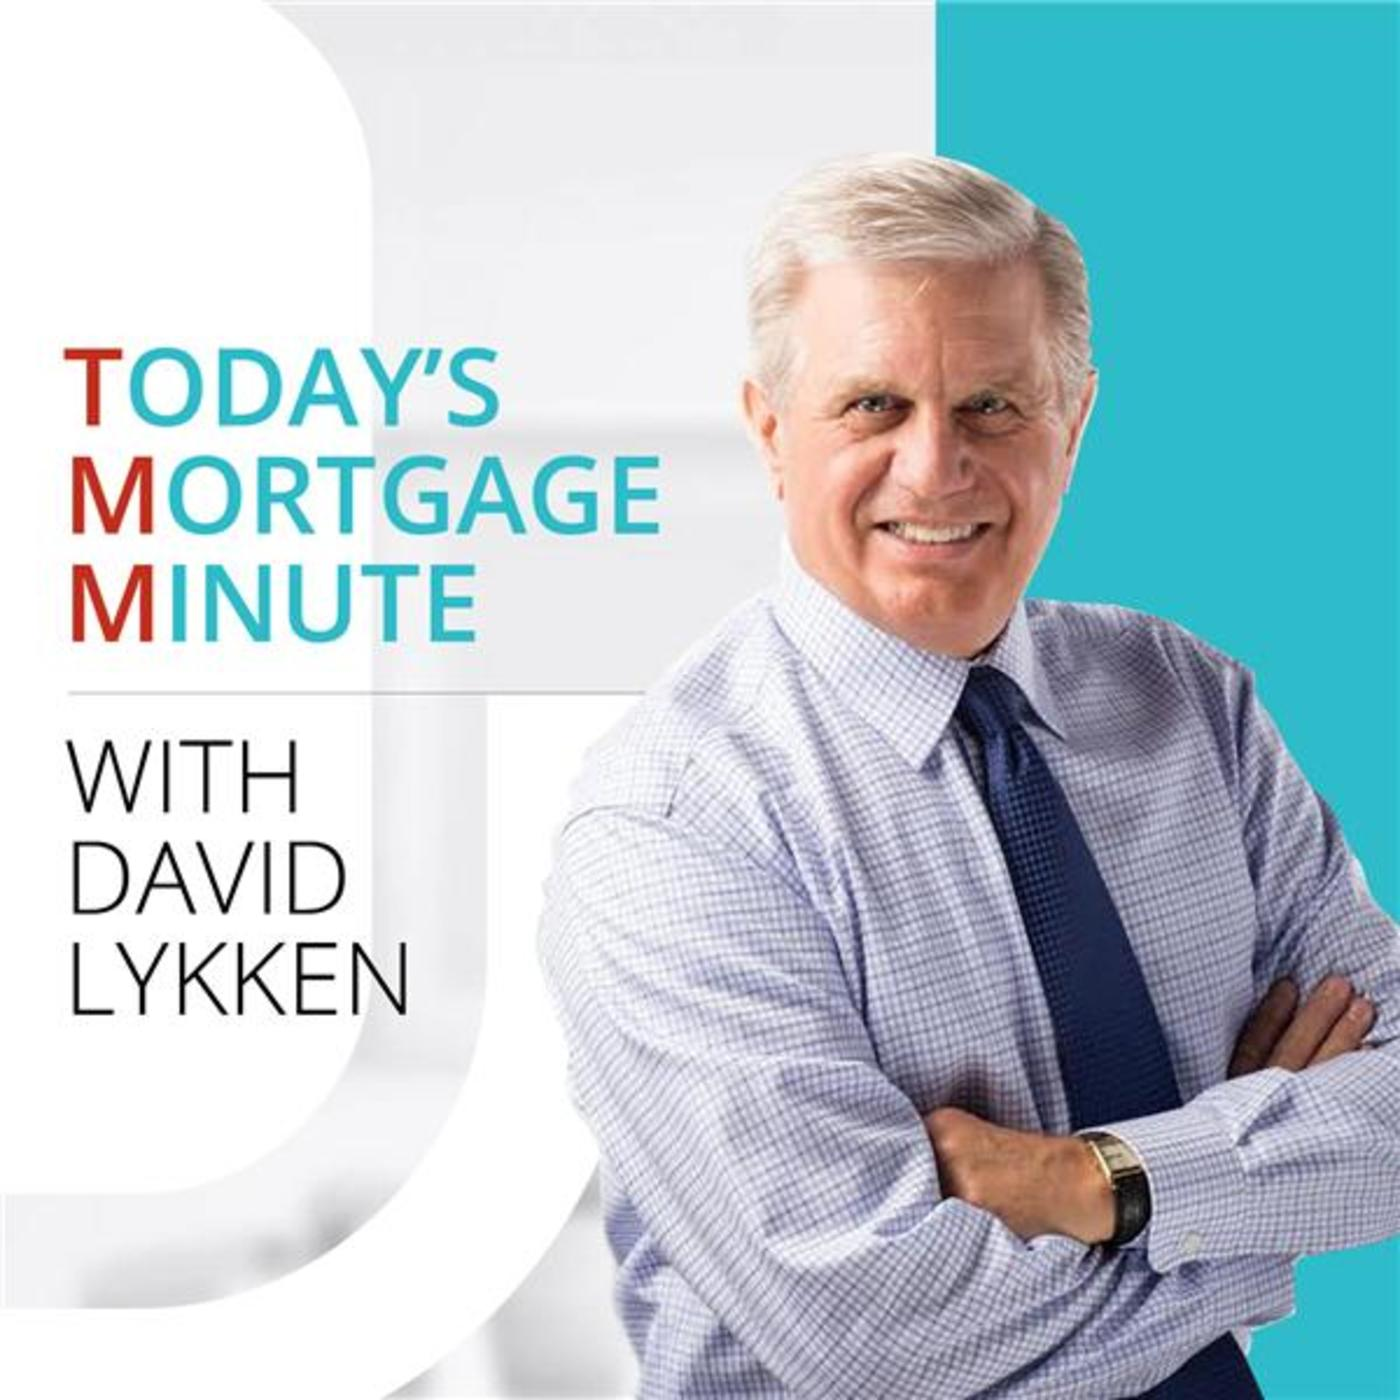 Today's Mortgage Minute